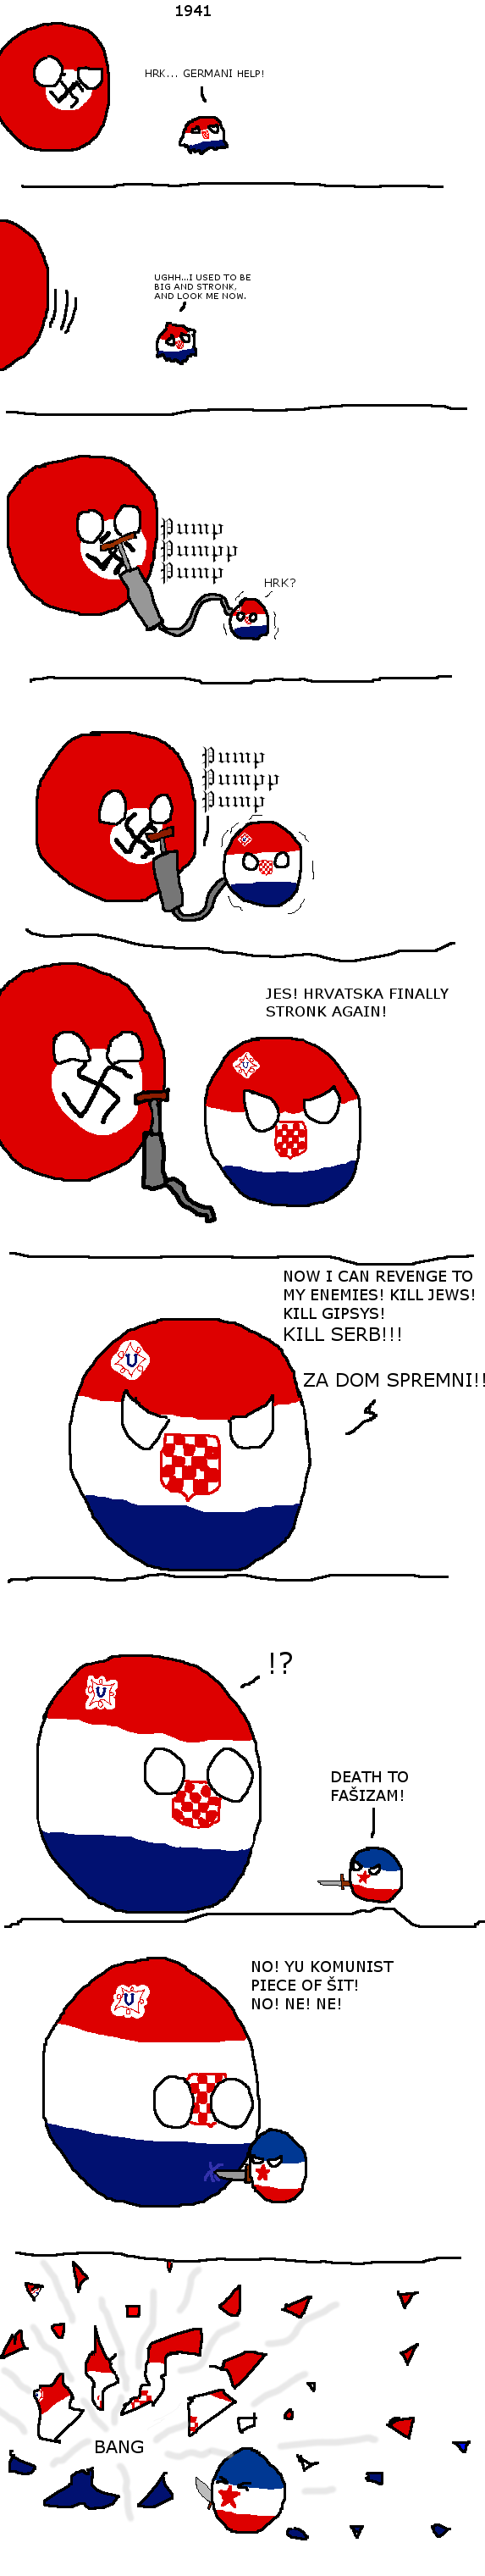 Croatia in WWII